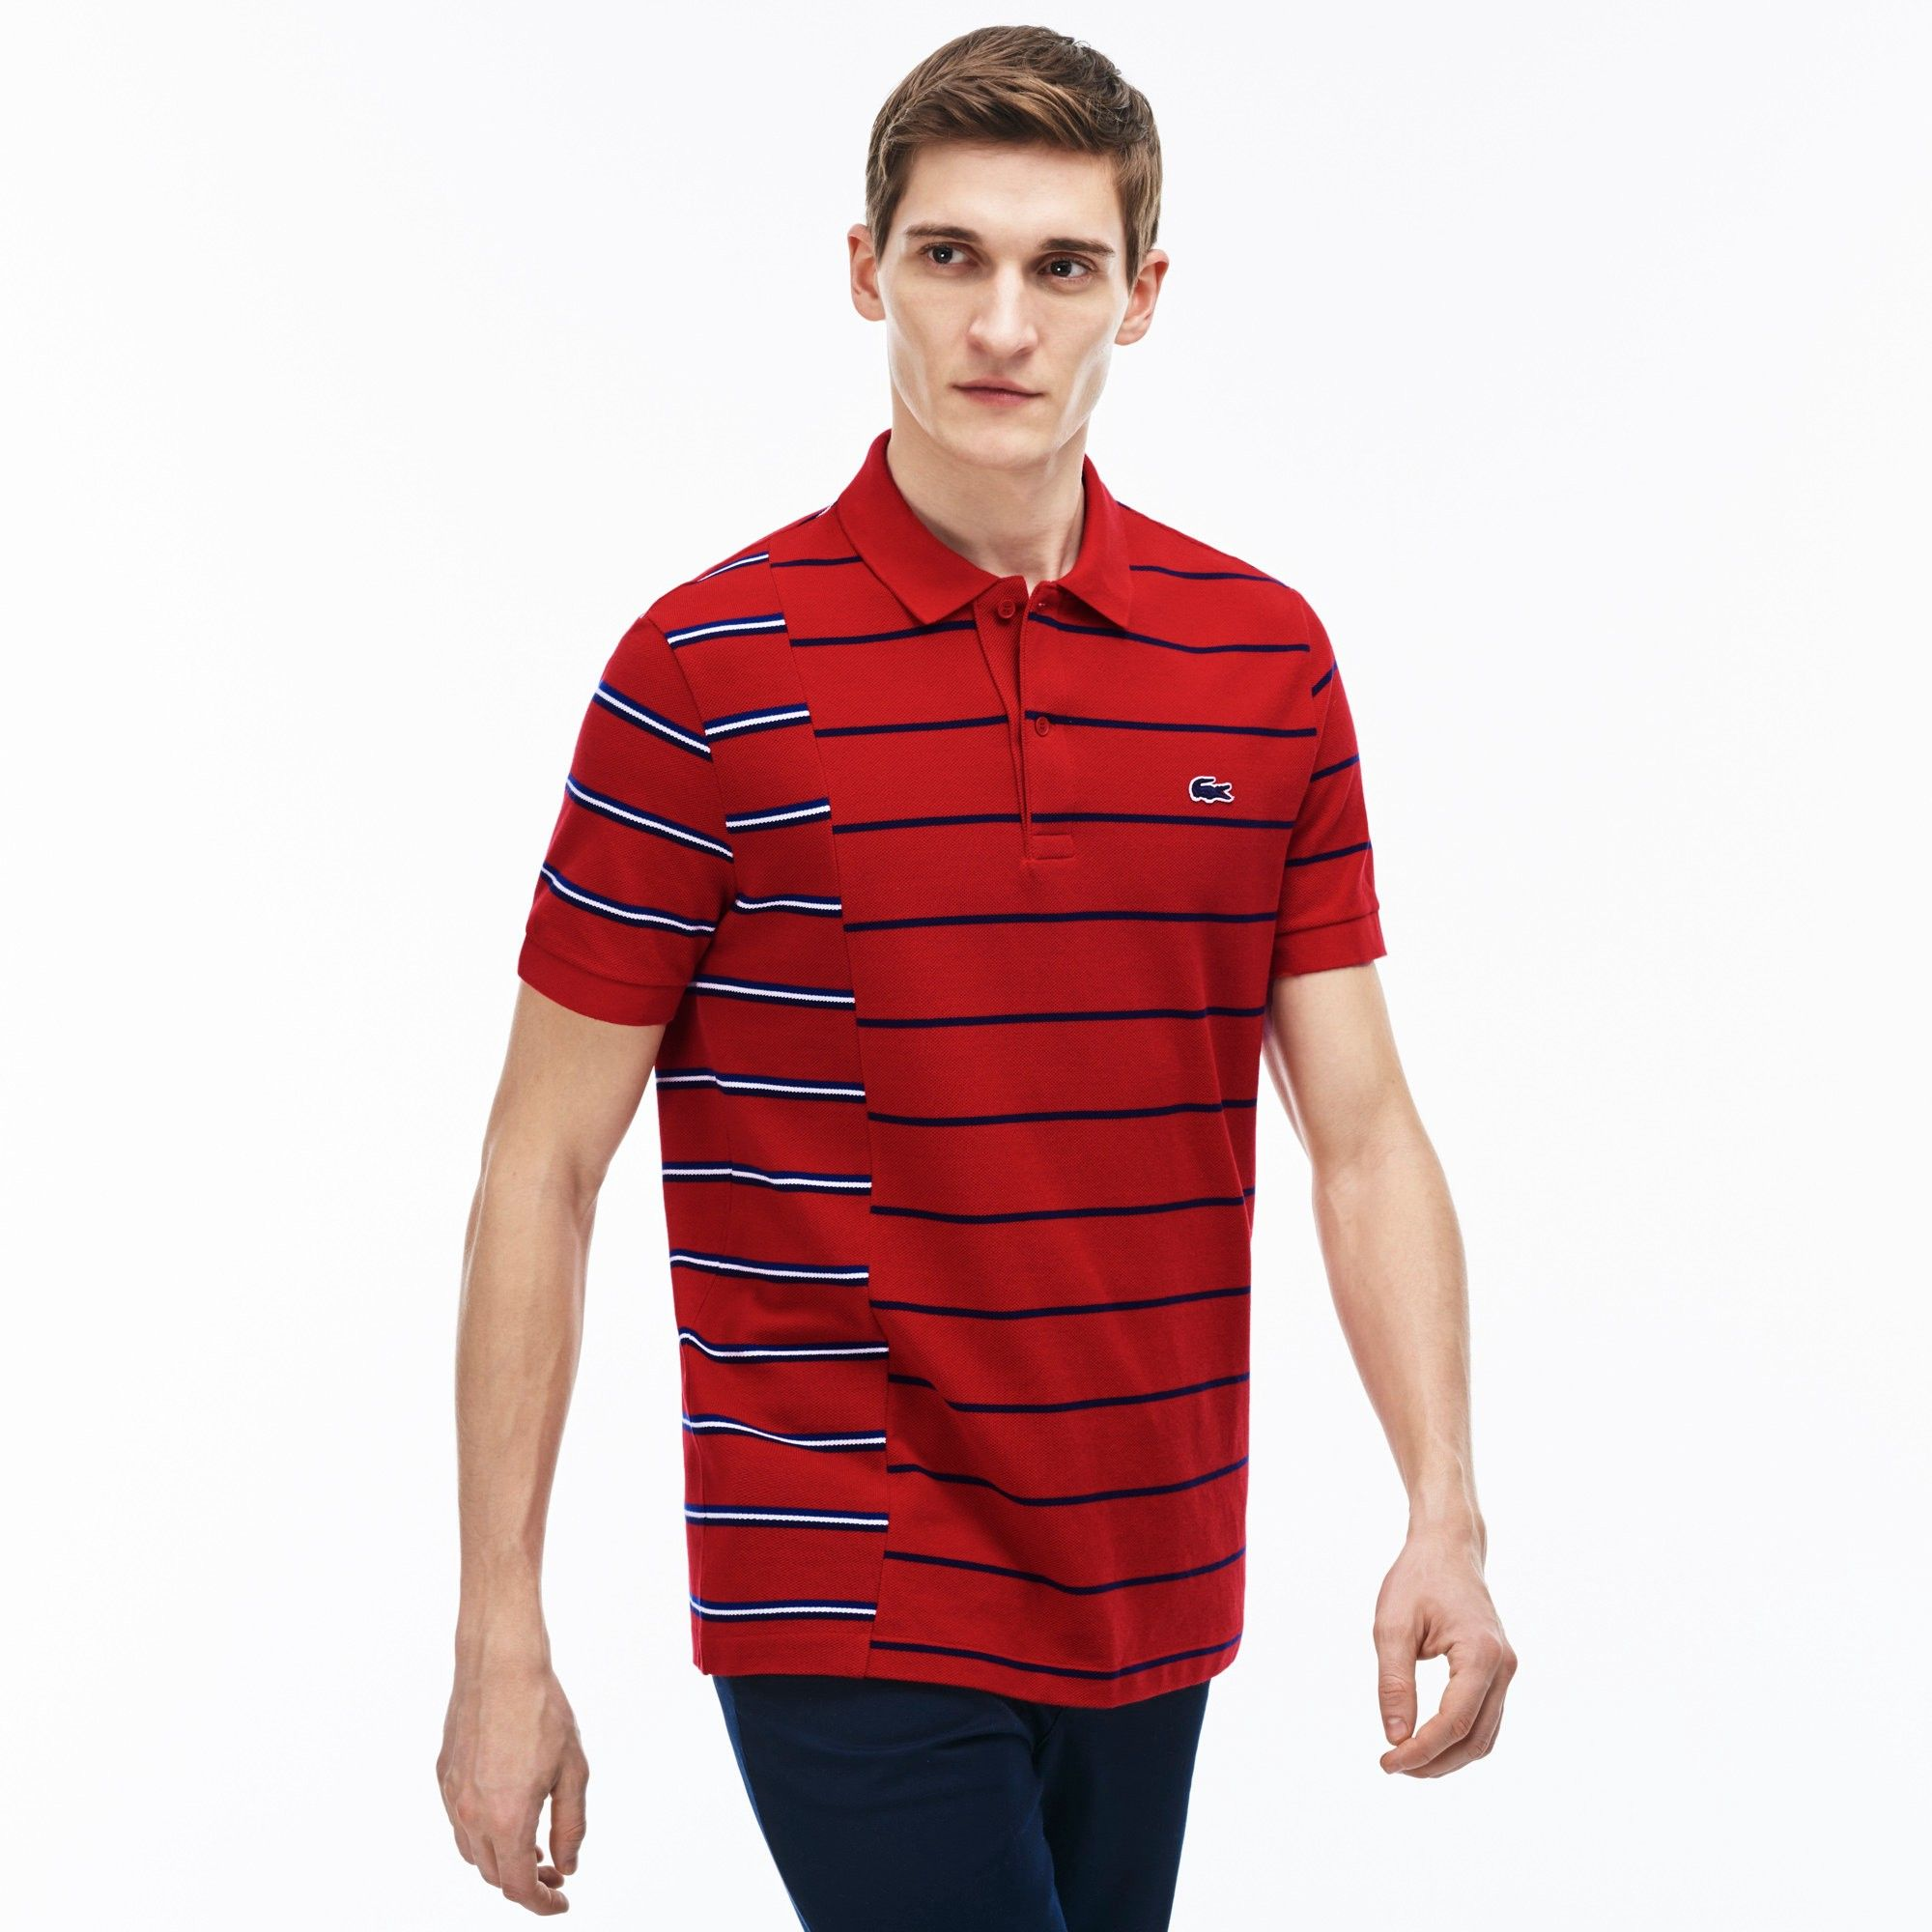 8c87b0355 LACOSTE Men's Made in France Regular Fit Cotton Piqué Polo Shirt -  red/ship-inkwell-white. #lacoste #cloth #